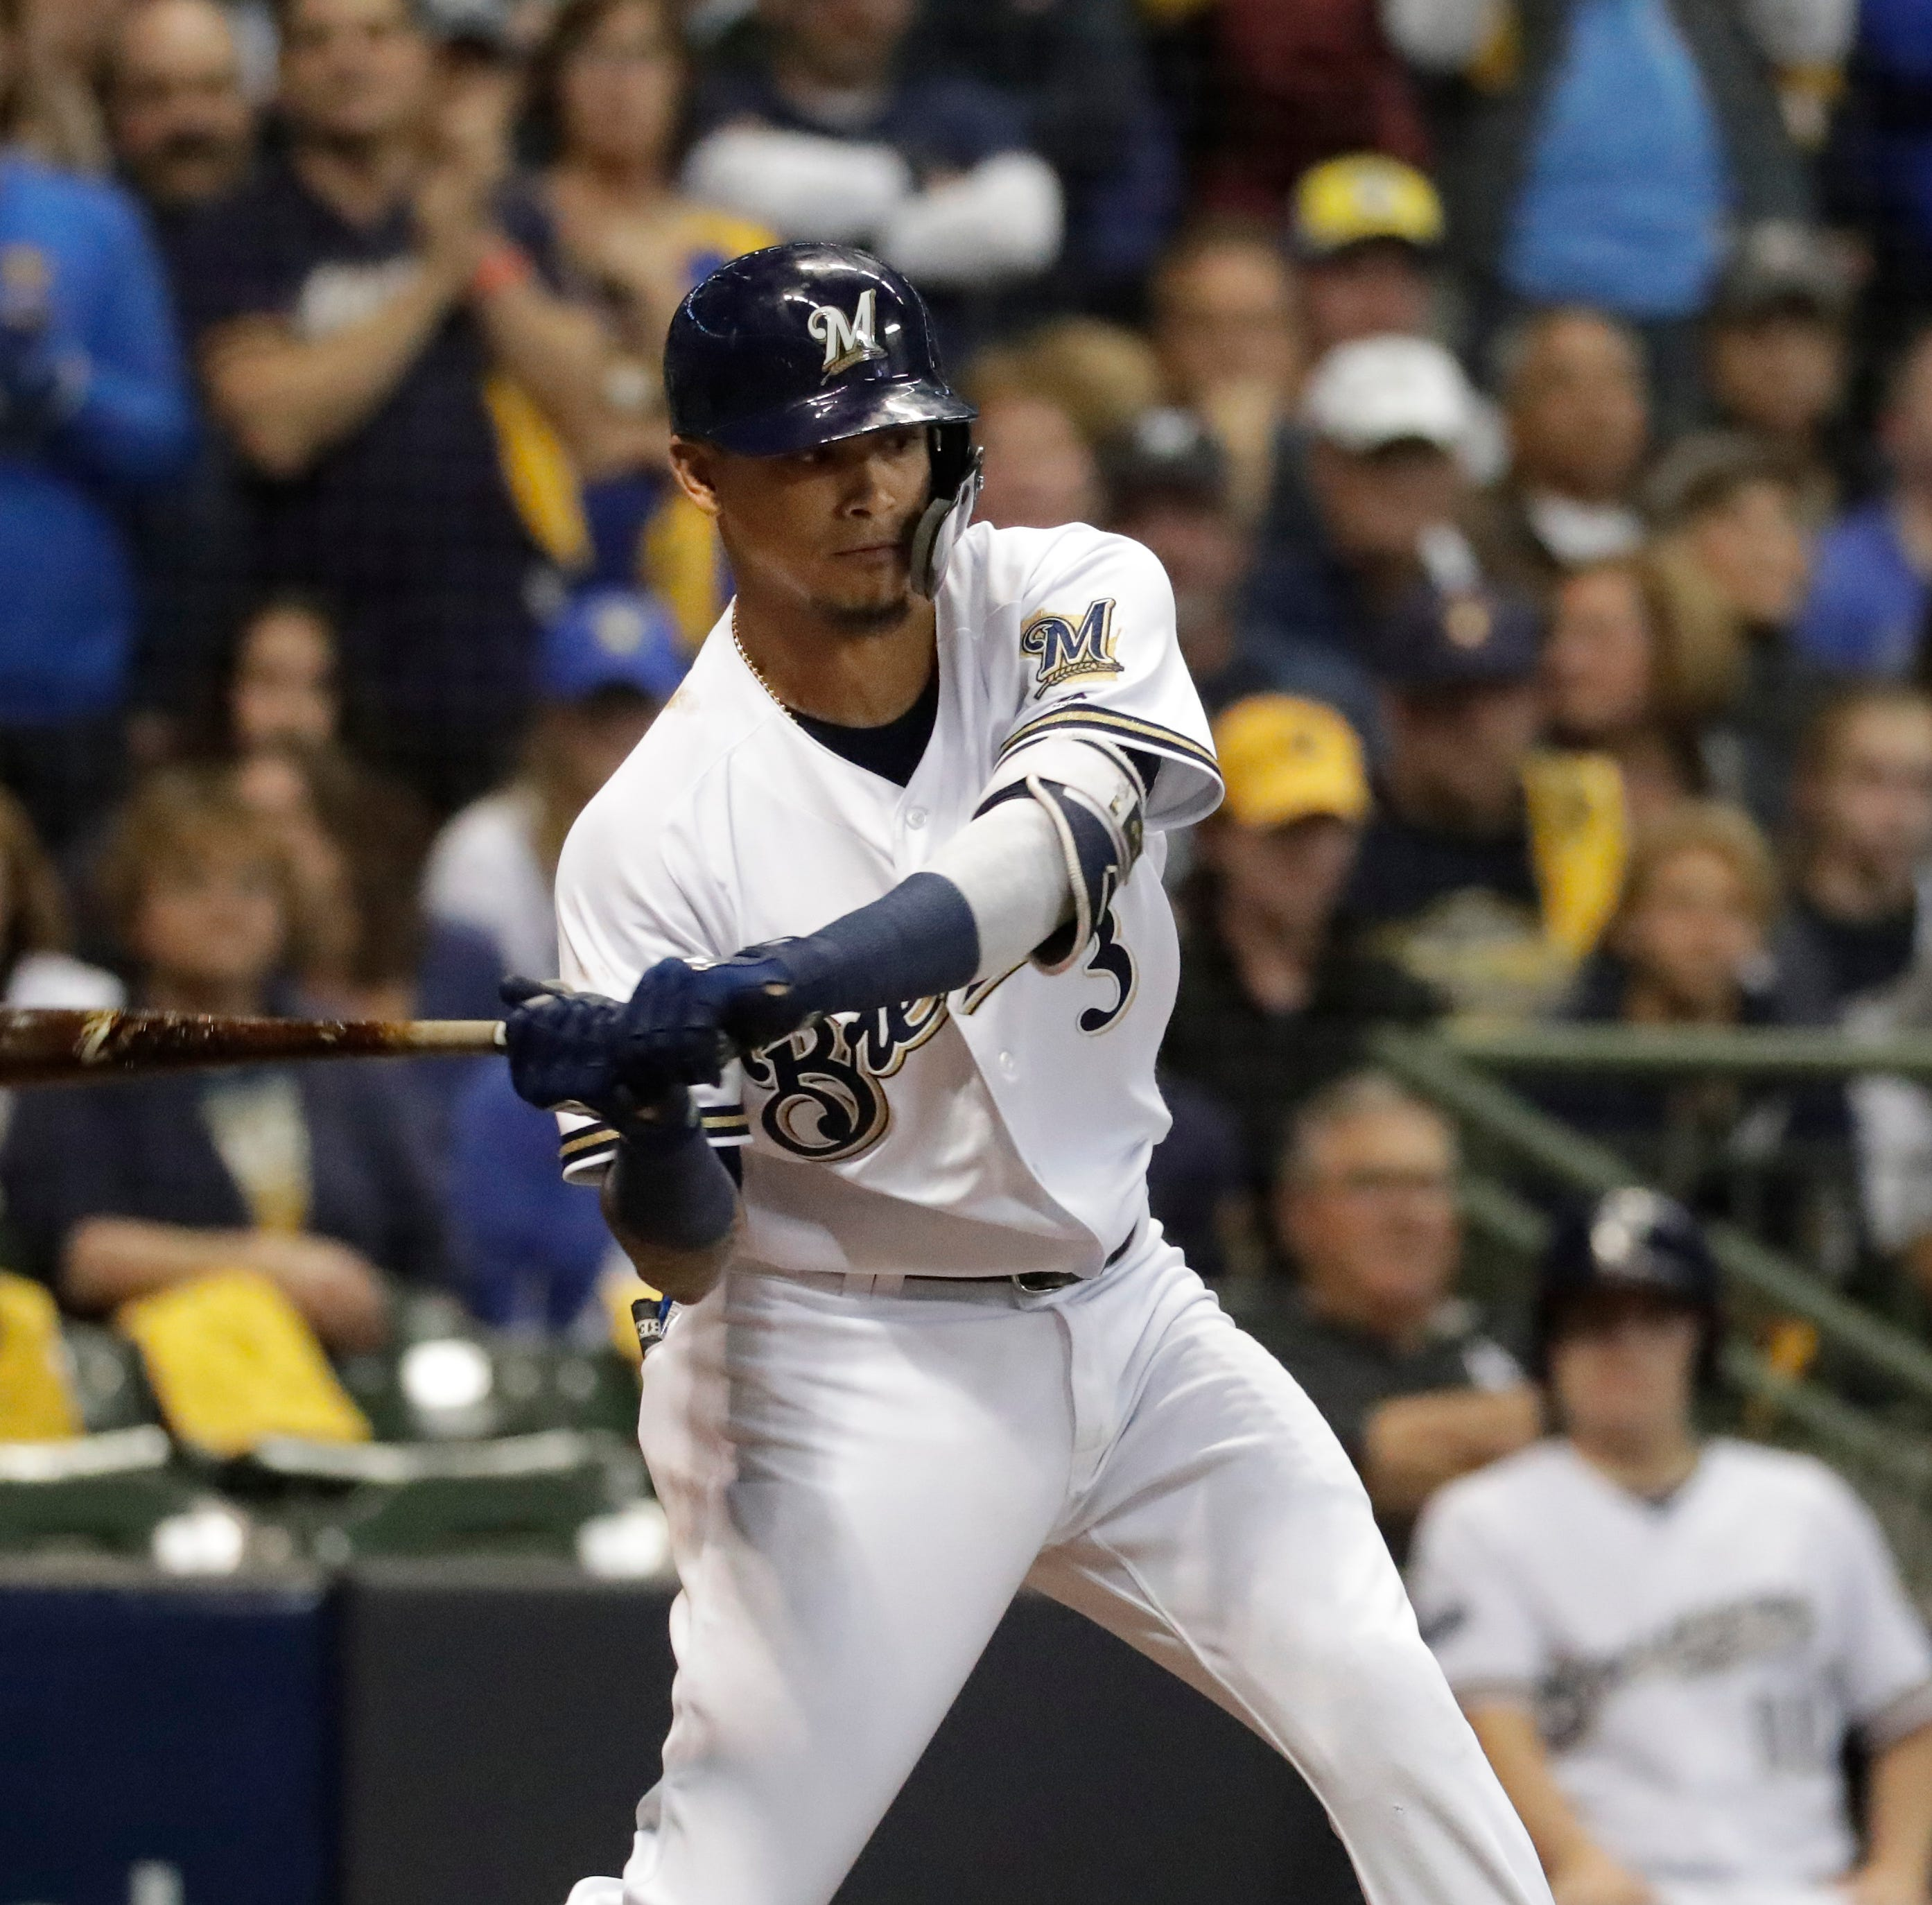 Notes: Orlando Arcia's resurgence at plate was one of best parts of Brewers' late burst